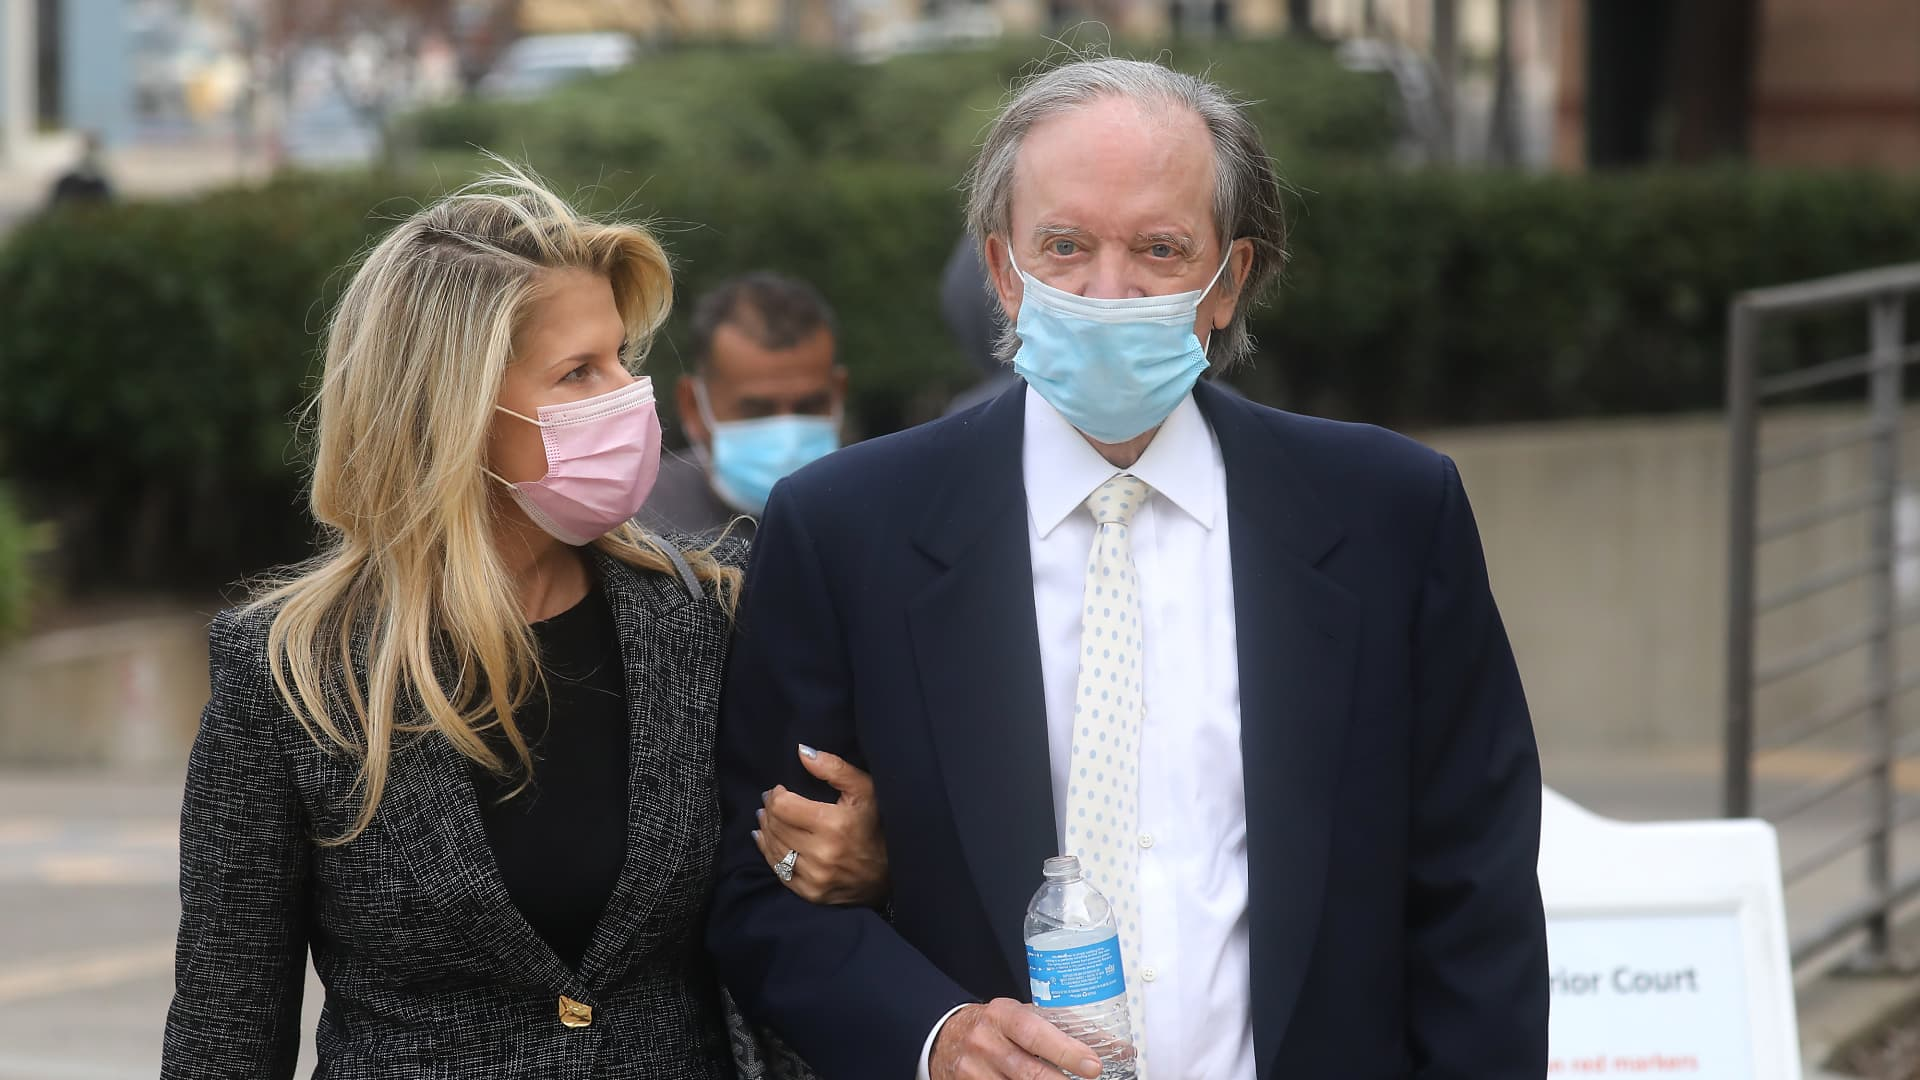 Bill Gross, co-founder of Pacific Investment Management Co. (PIMCO), and his girlfriend Amy Schwartz wear protective masks while arriving at state court in Santa Ana, California, U.S., on Monday, Dec. 7, 2020.